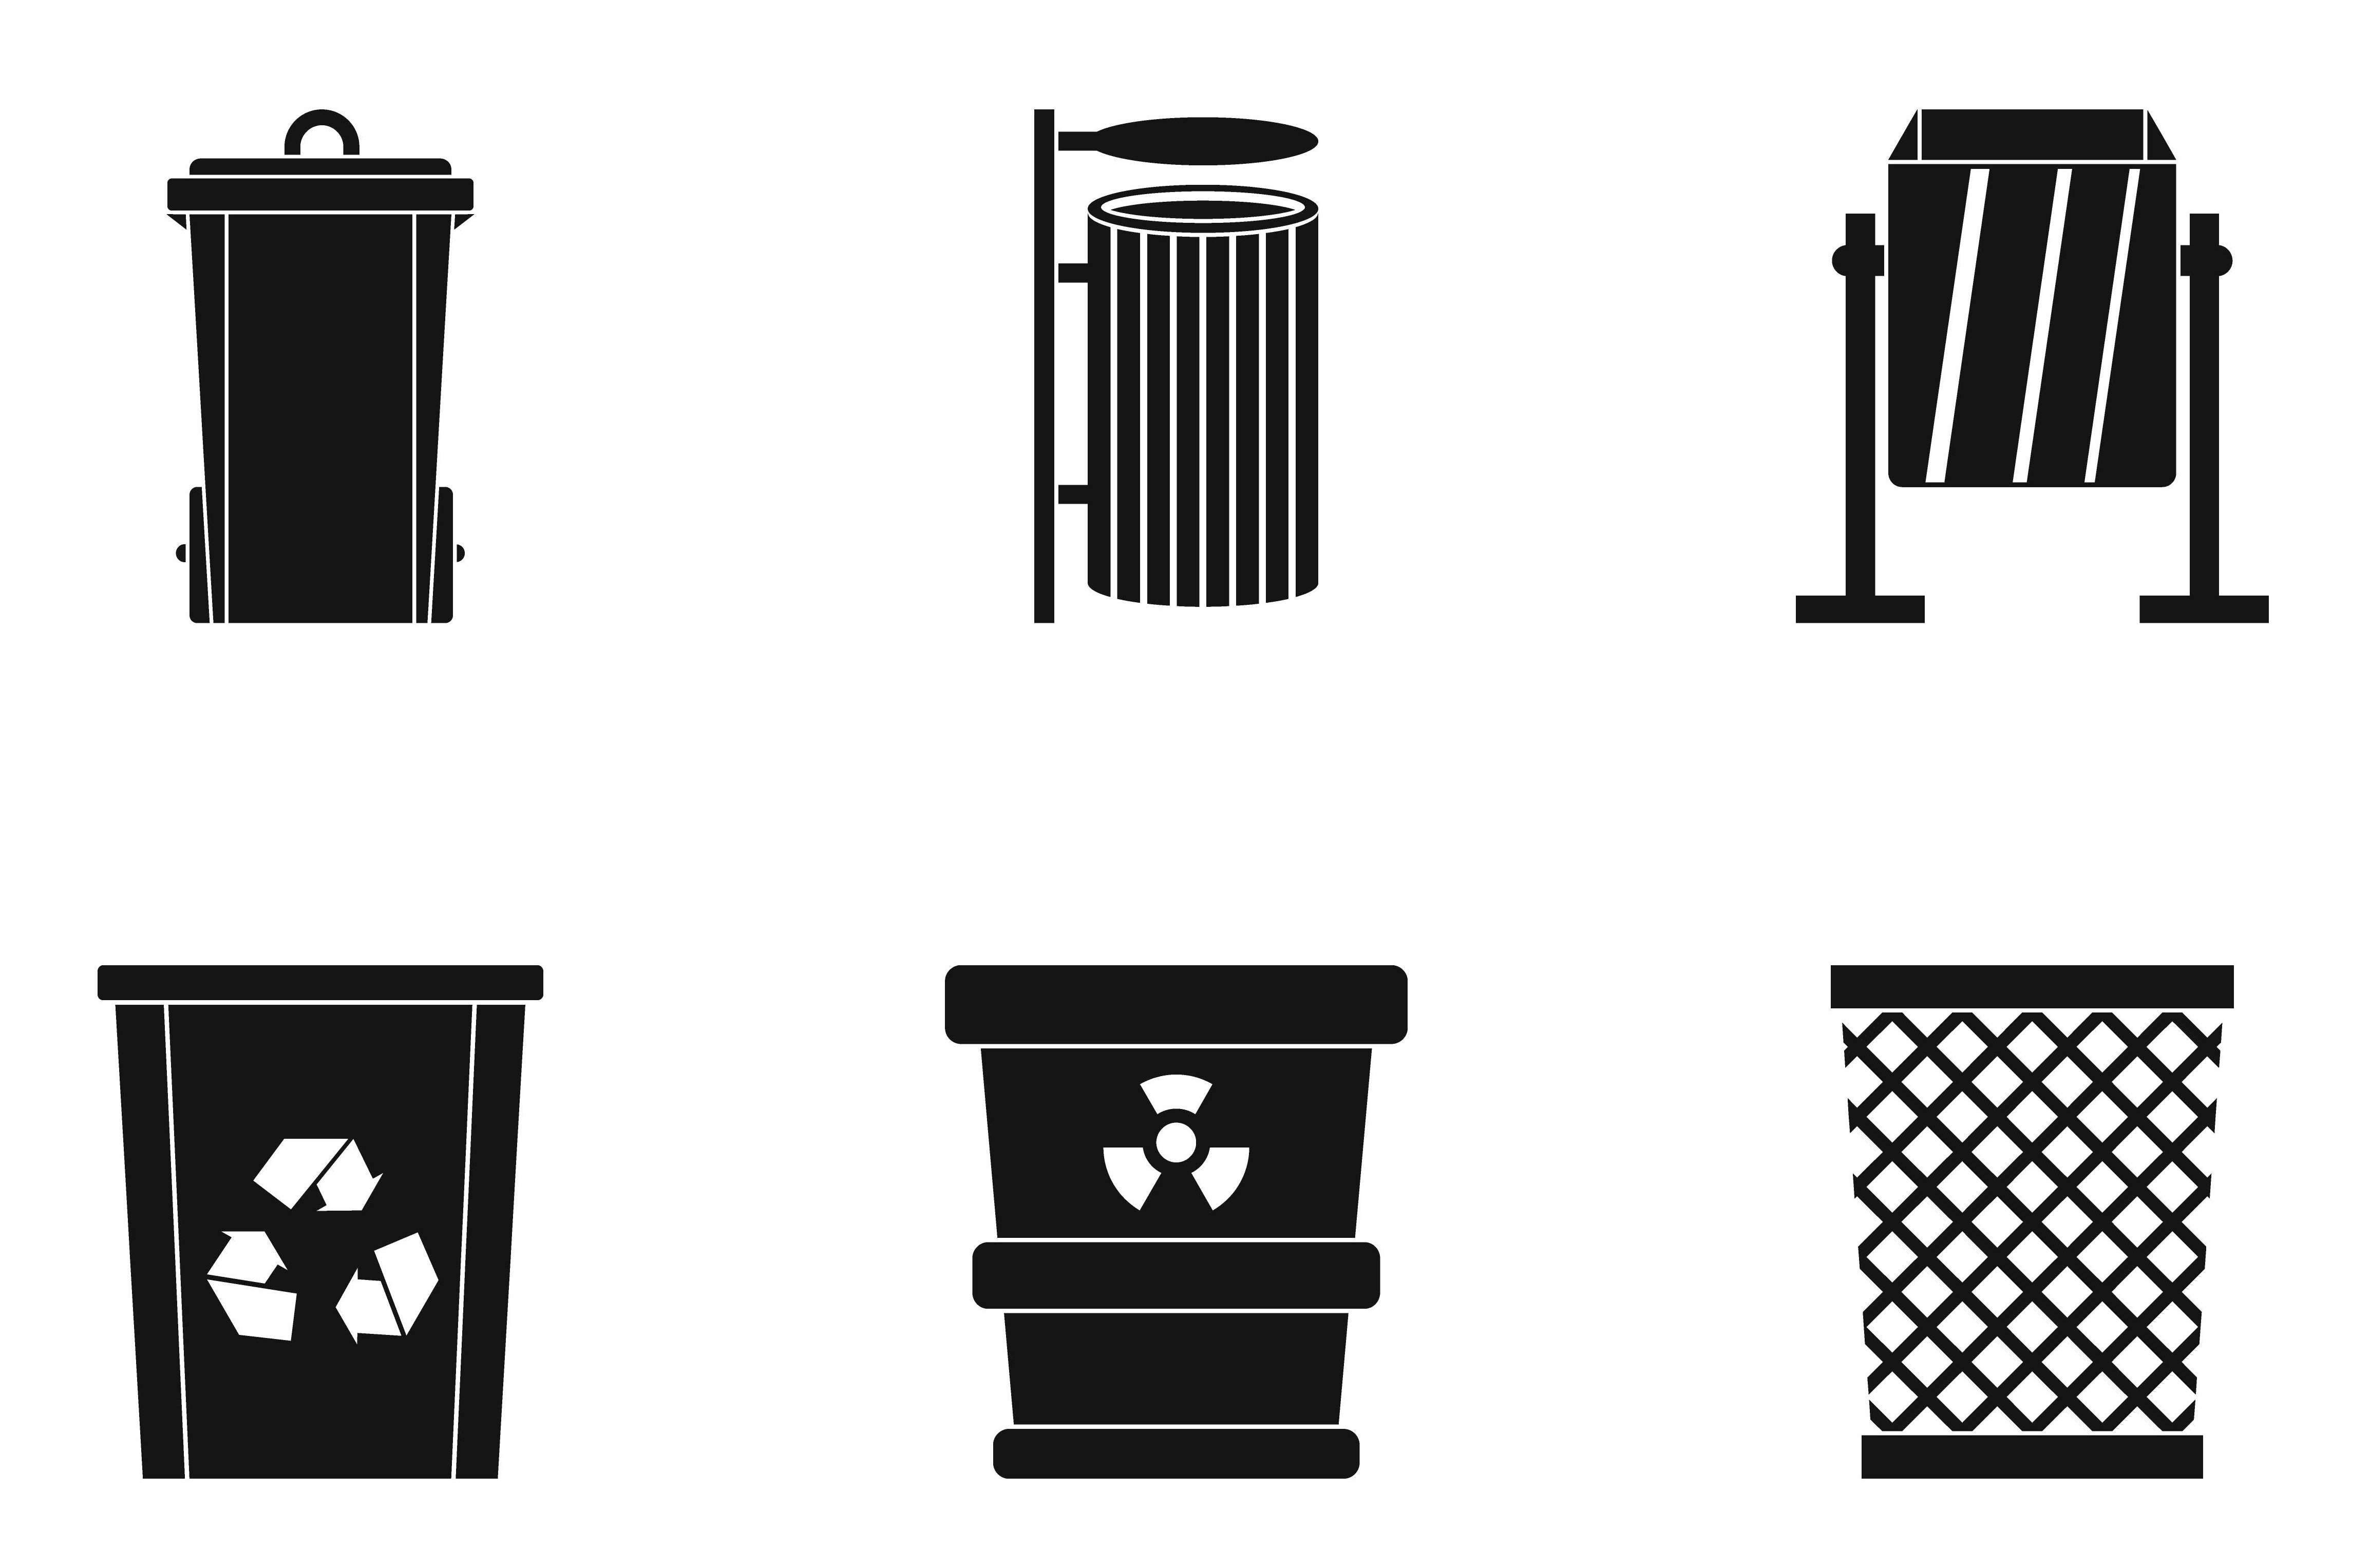 Two people talking intimately clipart vector free download Trash Talk: On Translating Garbage vector free download